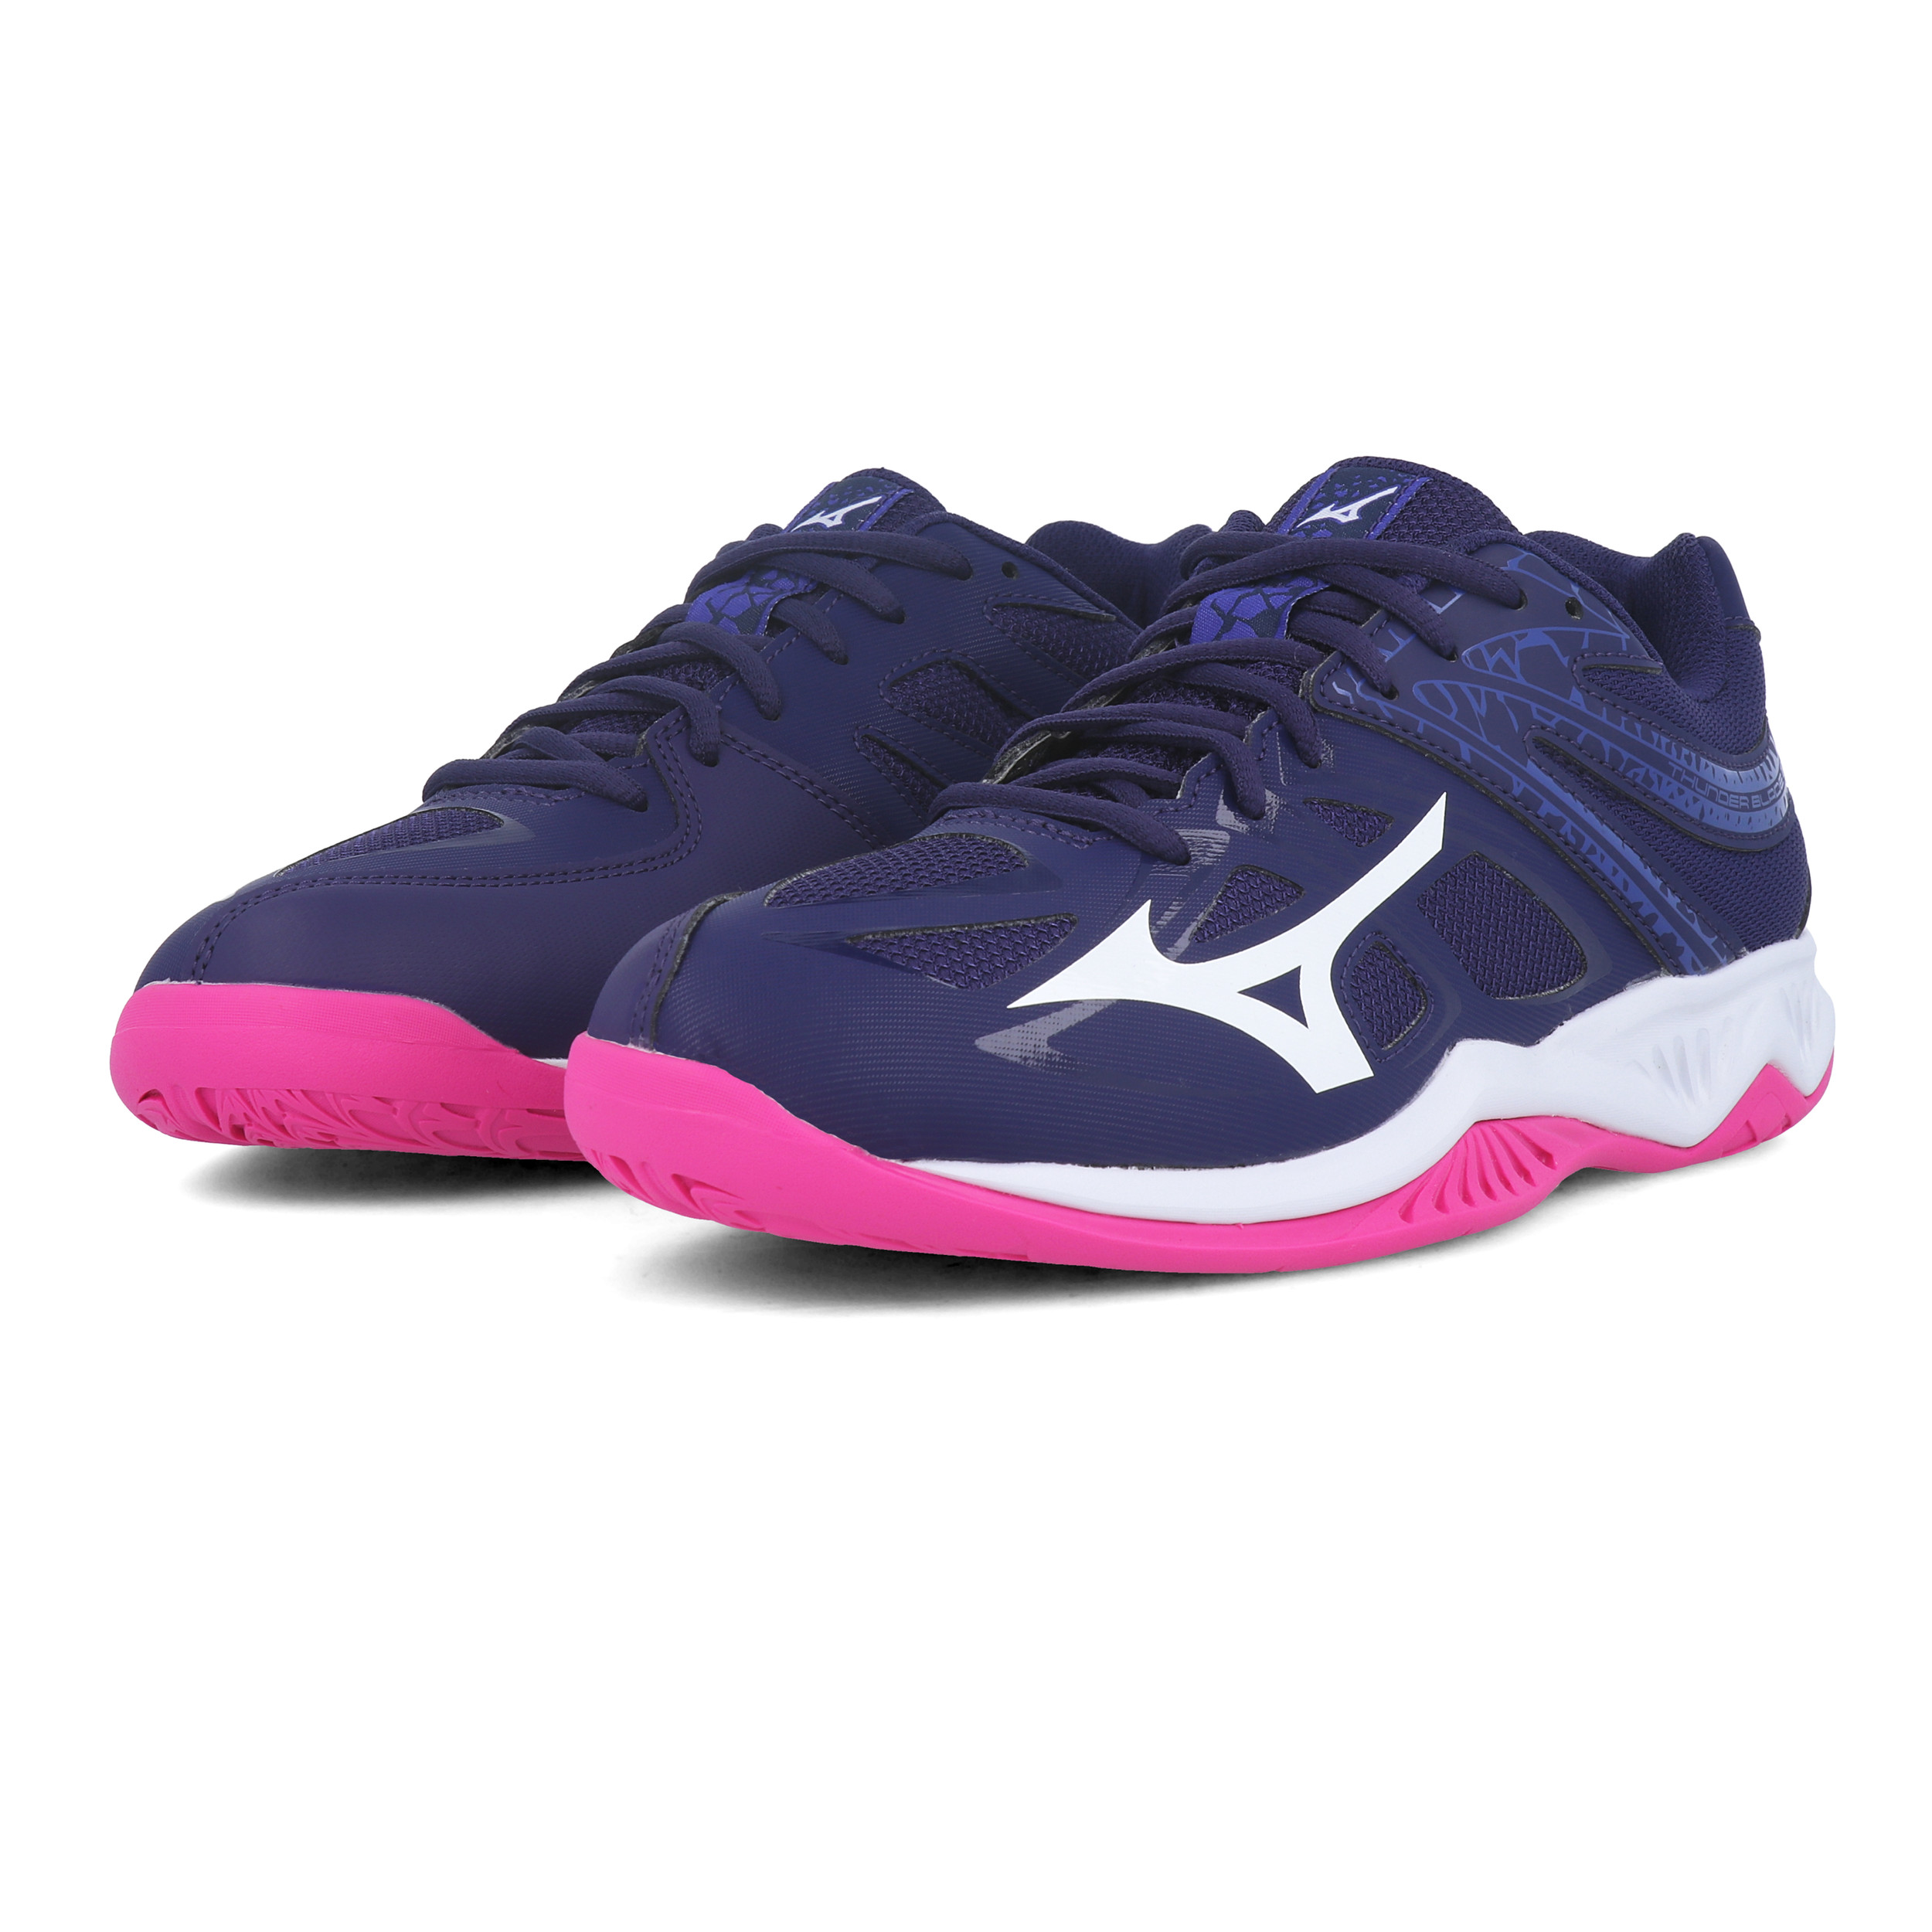 Mizuno Thunder Blade 2 Women's Indoor Court Shoes